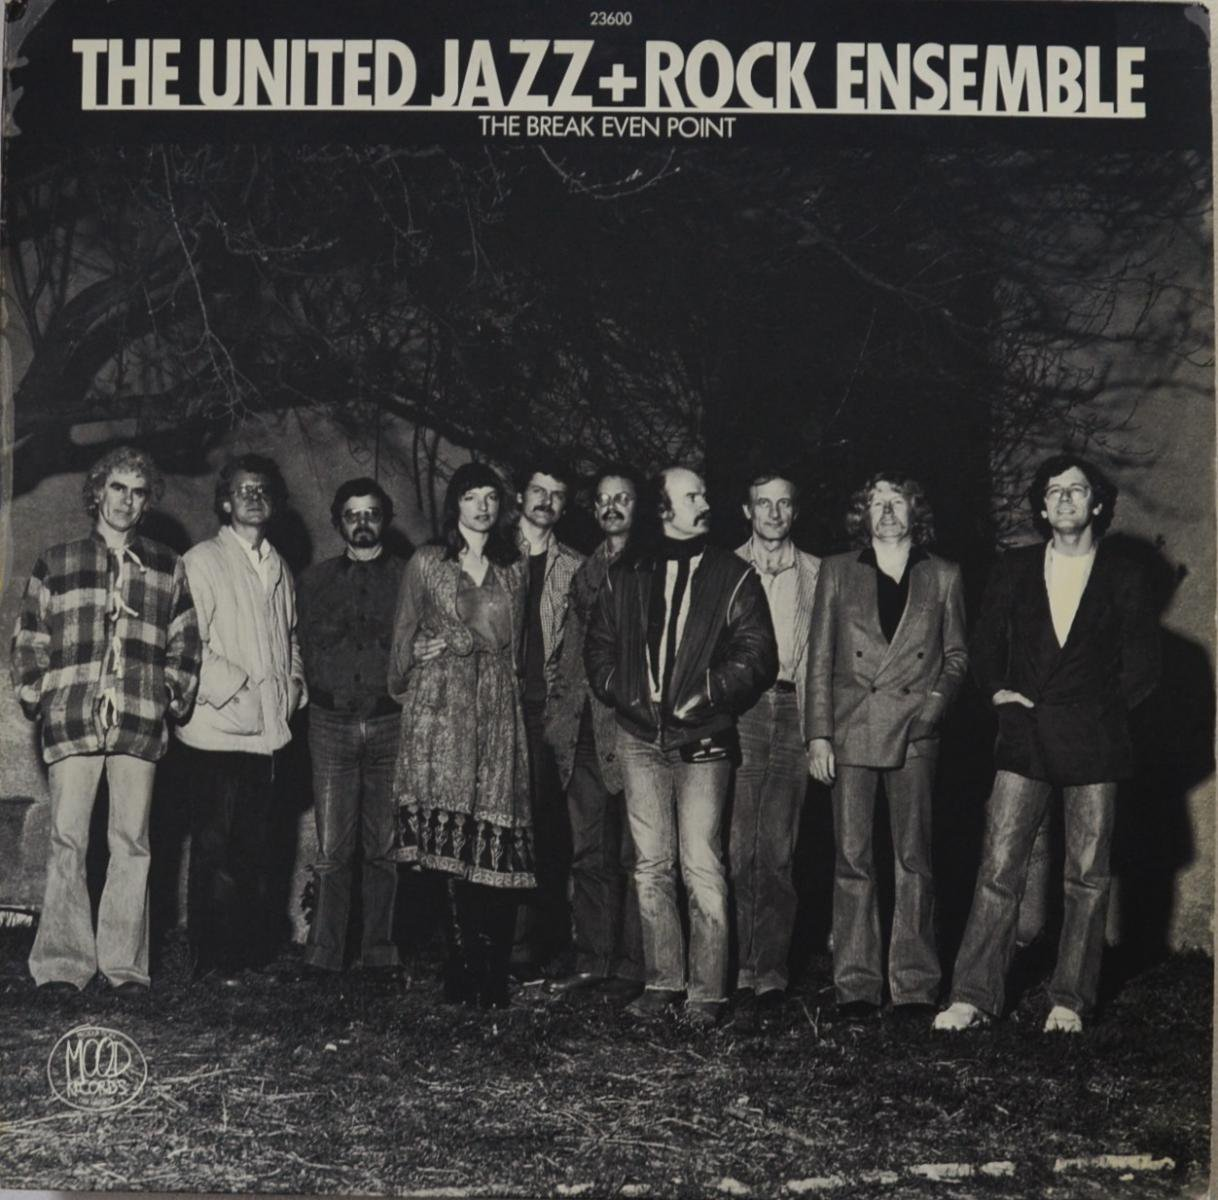 THE UNITED JAZZ + ROCK ENSEMBLE / THE BREAK EVEN POINT (LP)